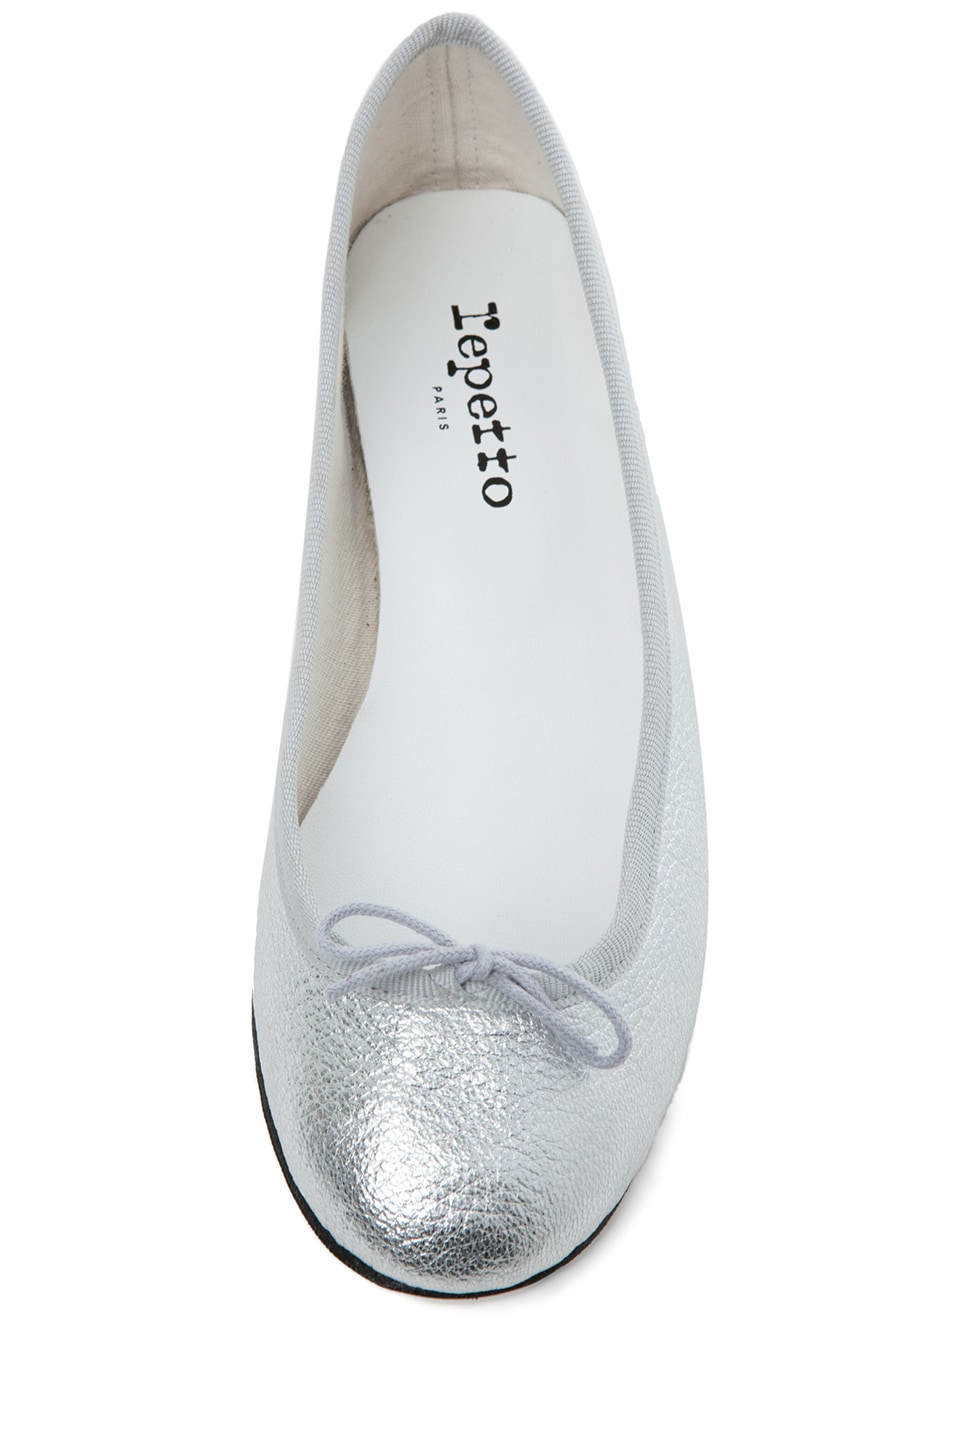 Image 4 of Repetto Leather Flat in Distressed Goatskin Silver